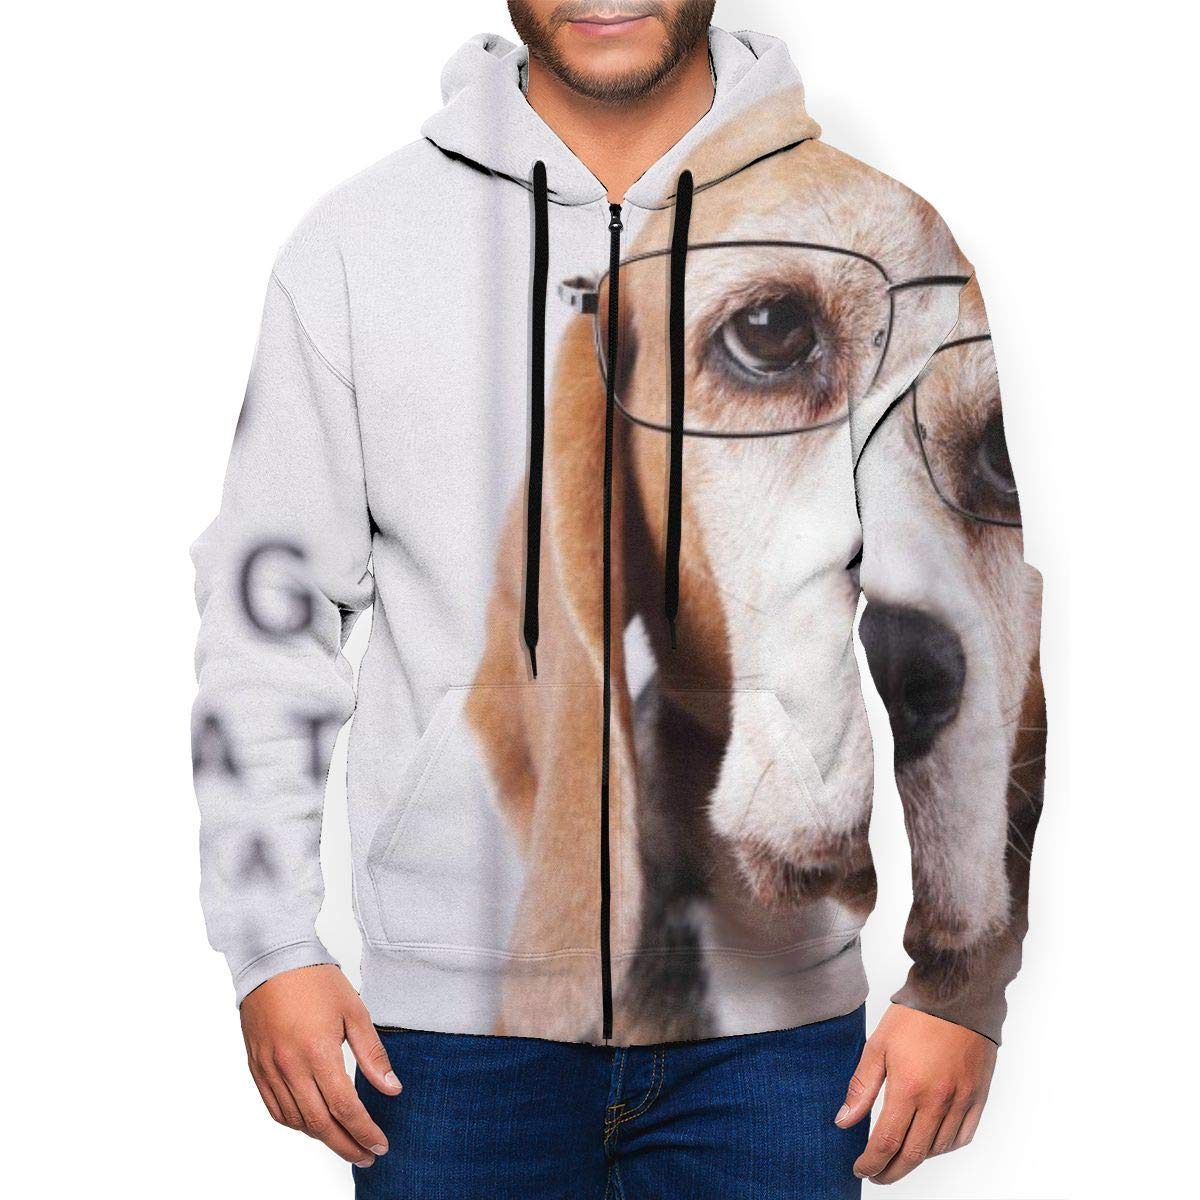 Owotyc Dog Glasses Dog Breed Puppy Youthful Personality Zipper Men Hoodie with Packet Black by Owotyc